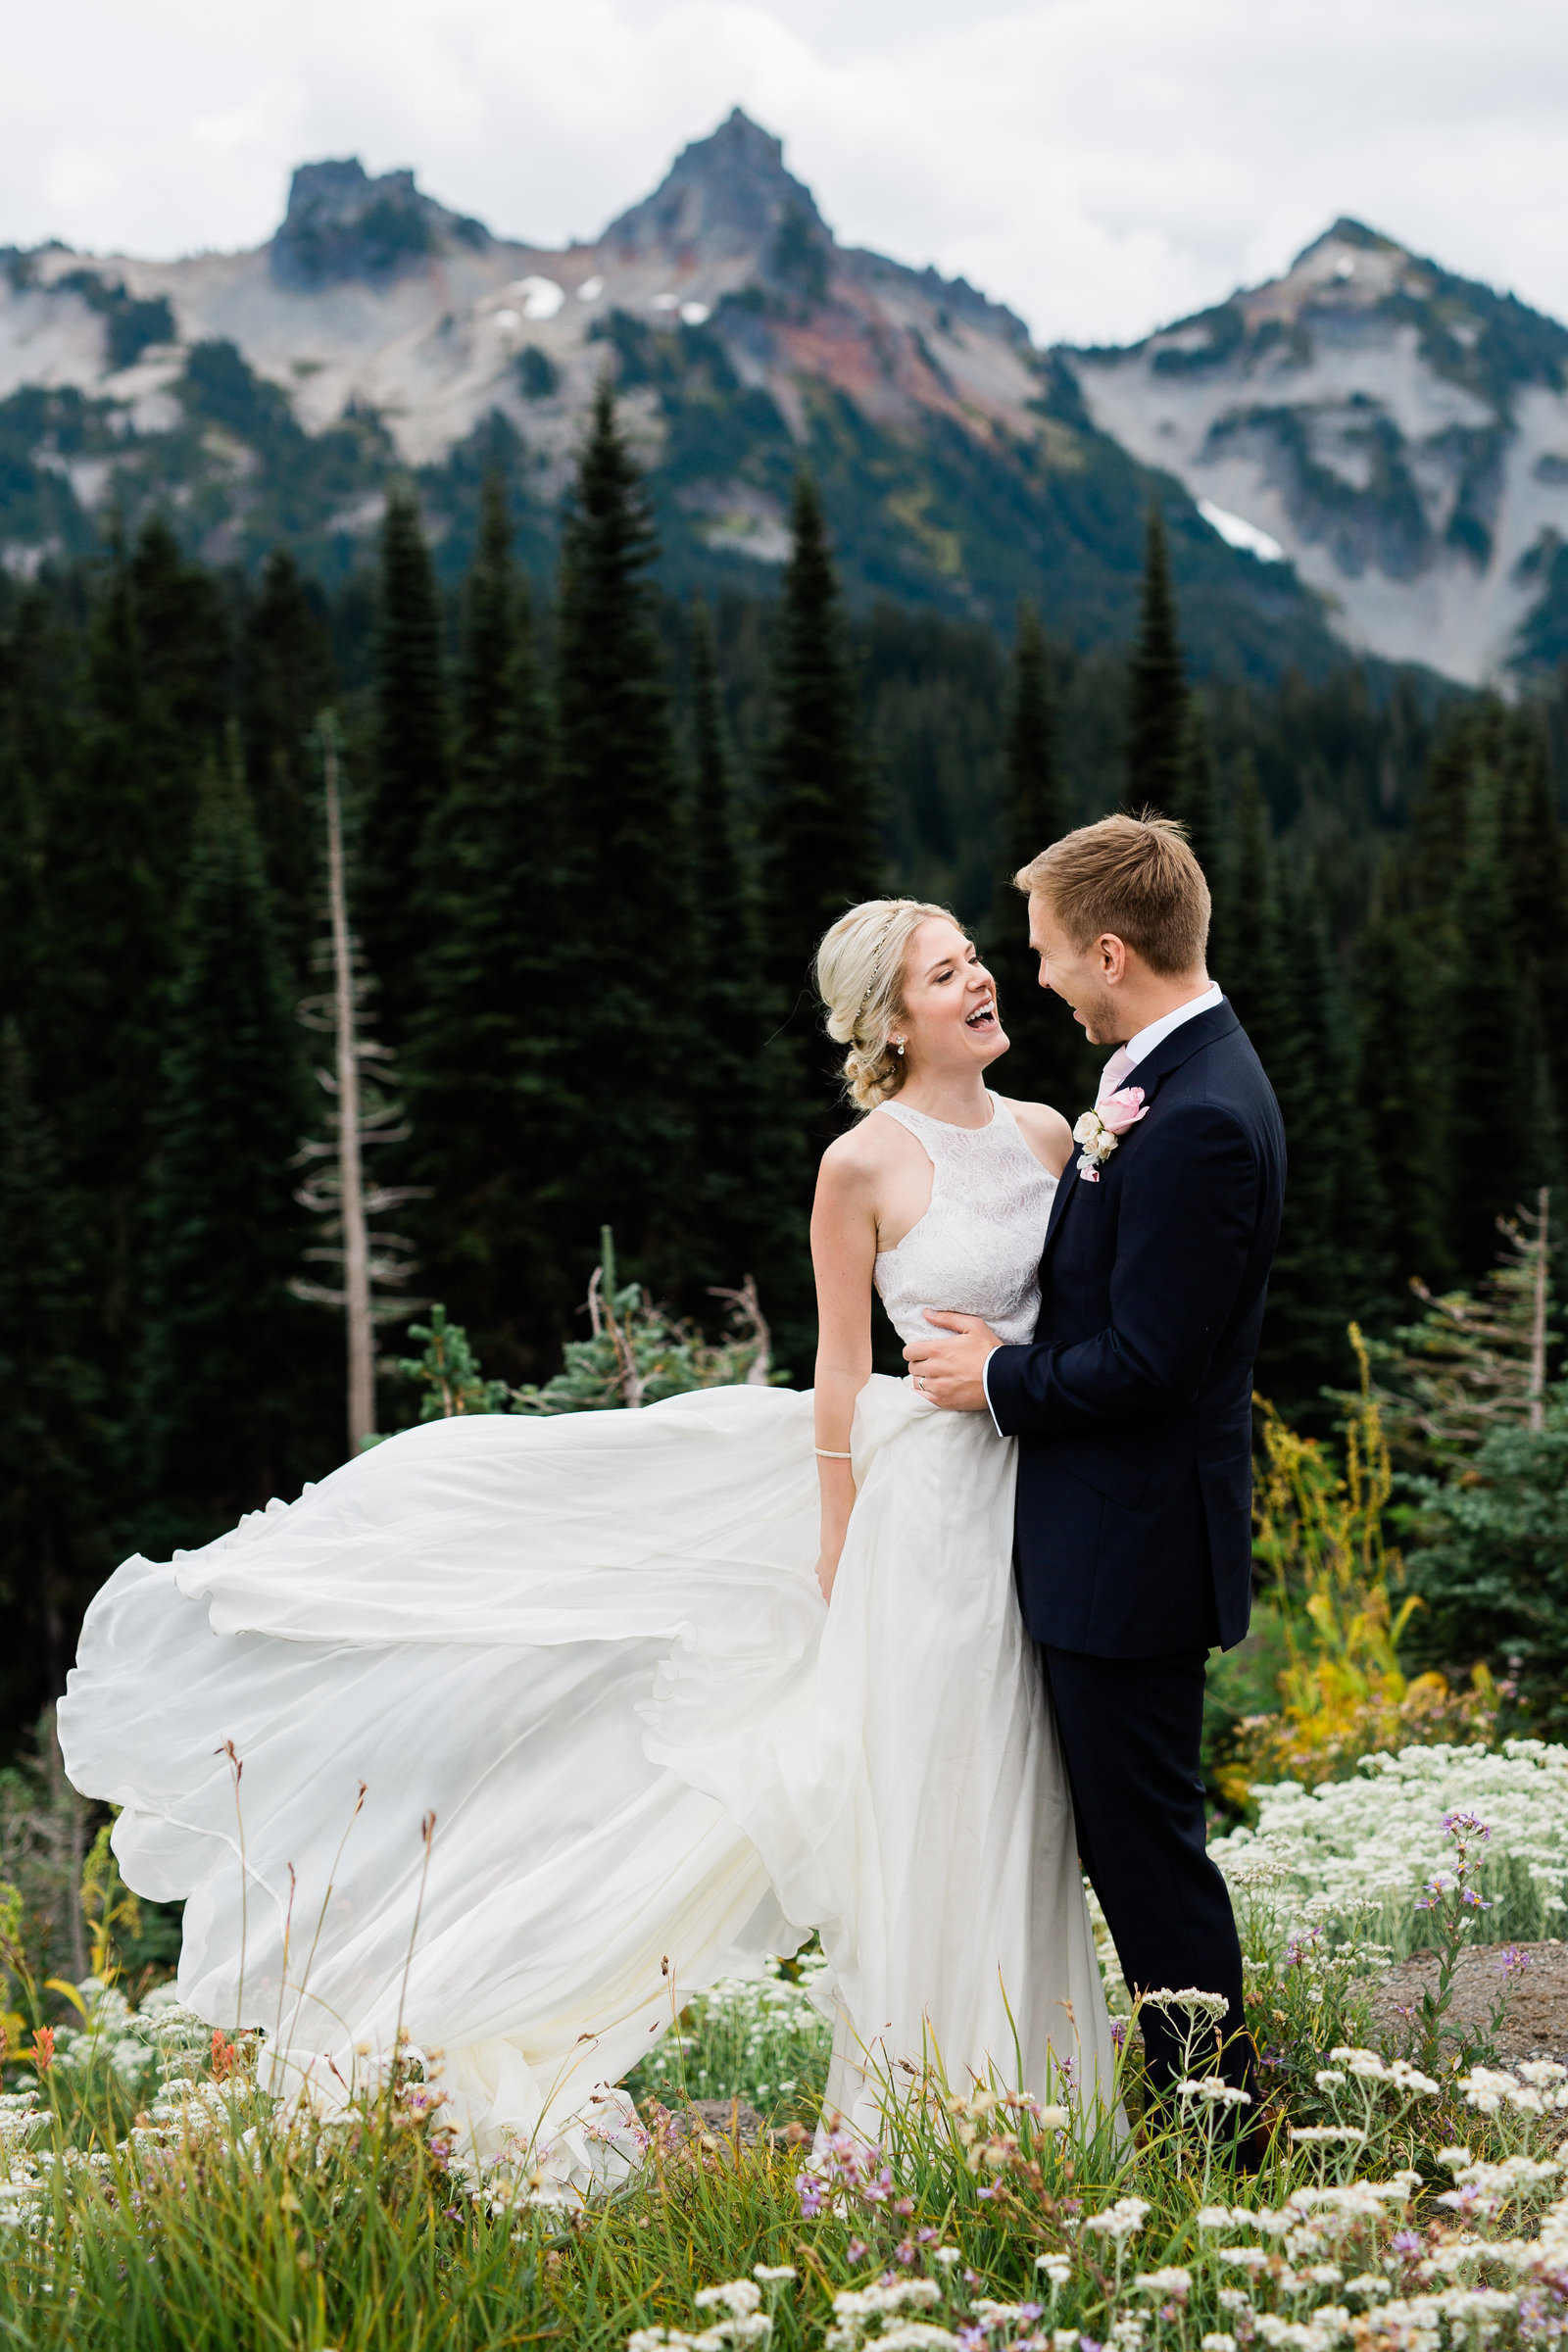 mount-rainier-national-park-elopement-cameron-zegers-photographer-seattle-130